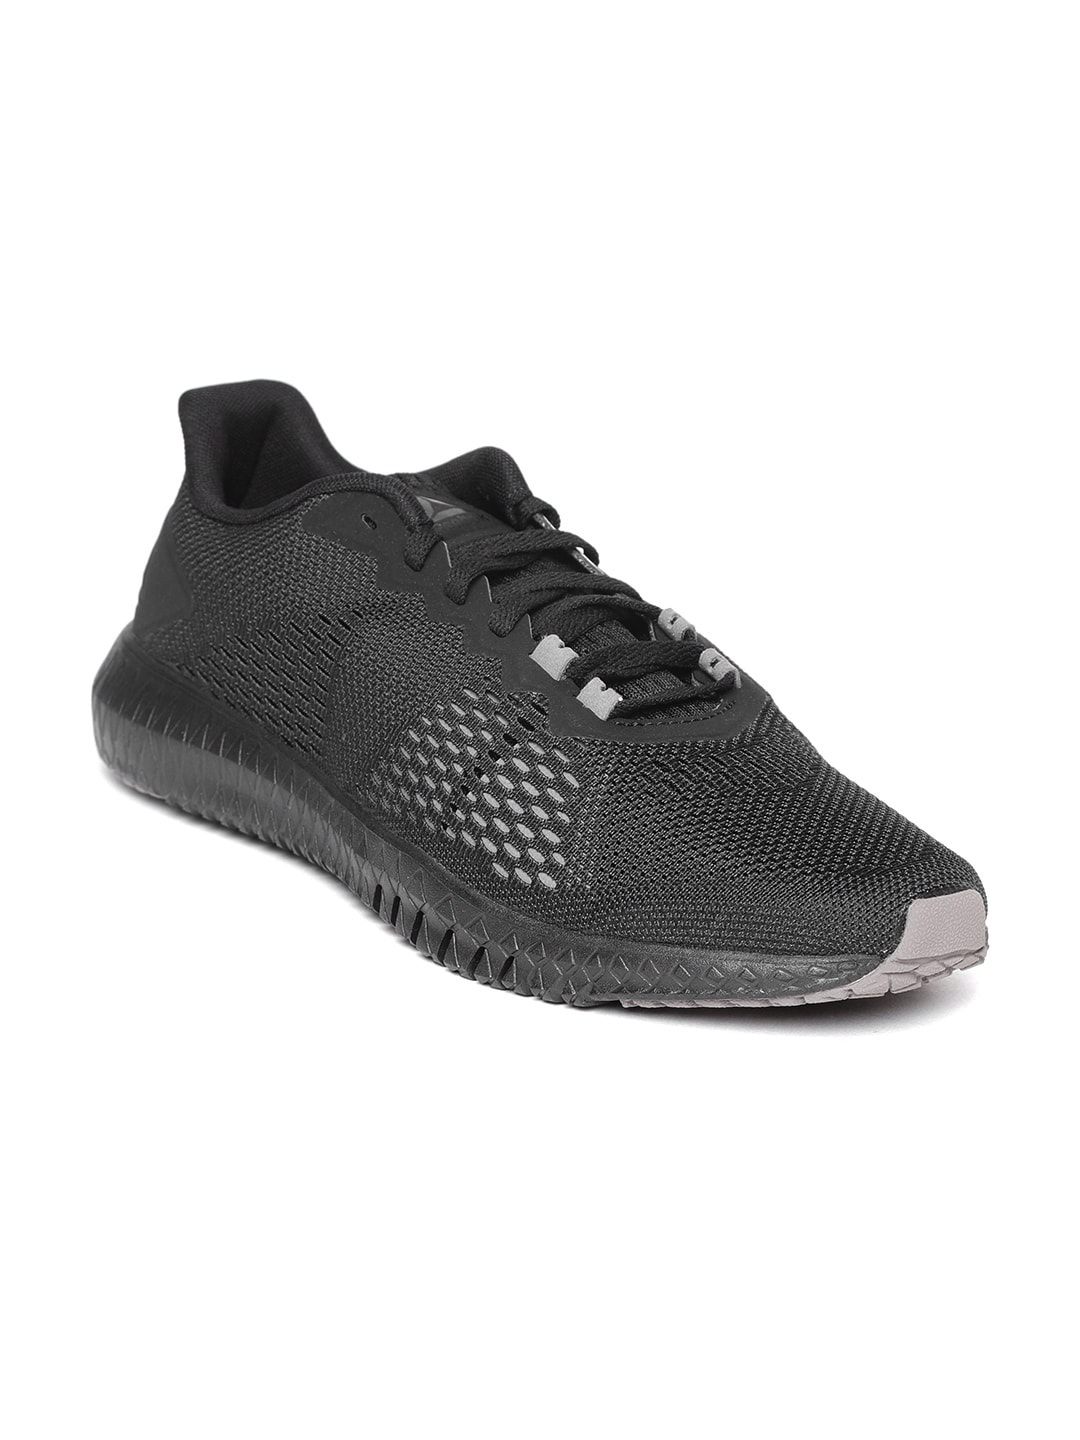 Reebok Shoes - Buy Reebok Shoes For Men   Women Online e8a4da422